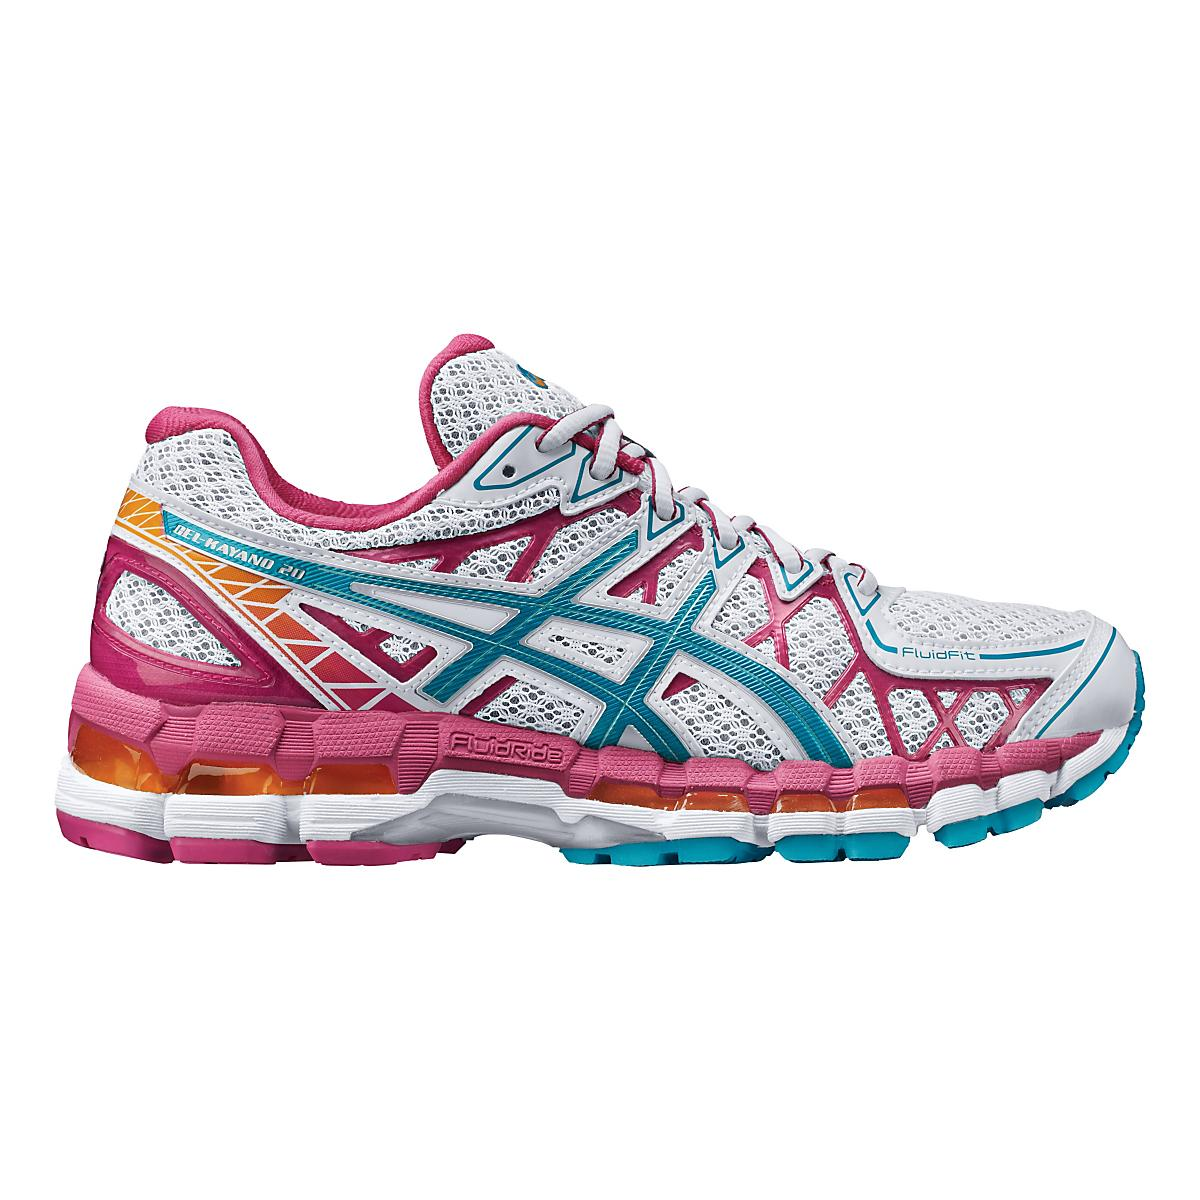 cheap for discount f8241 4a5fa Women's GEL-Kayano 20